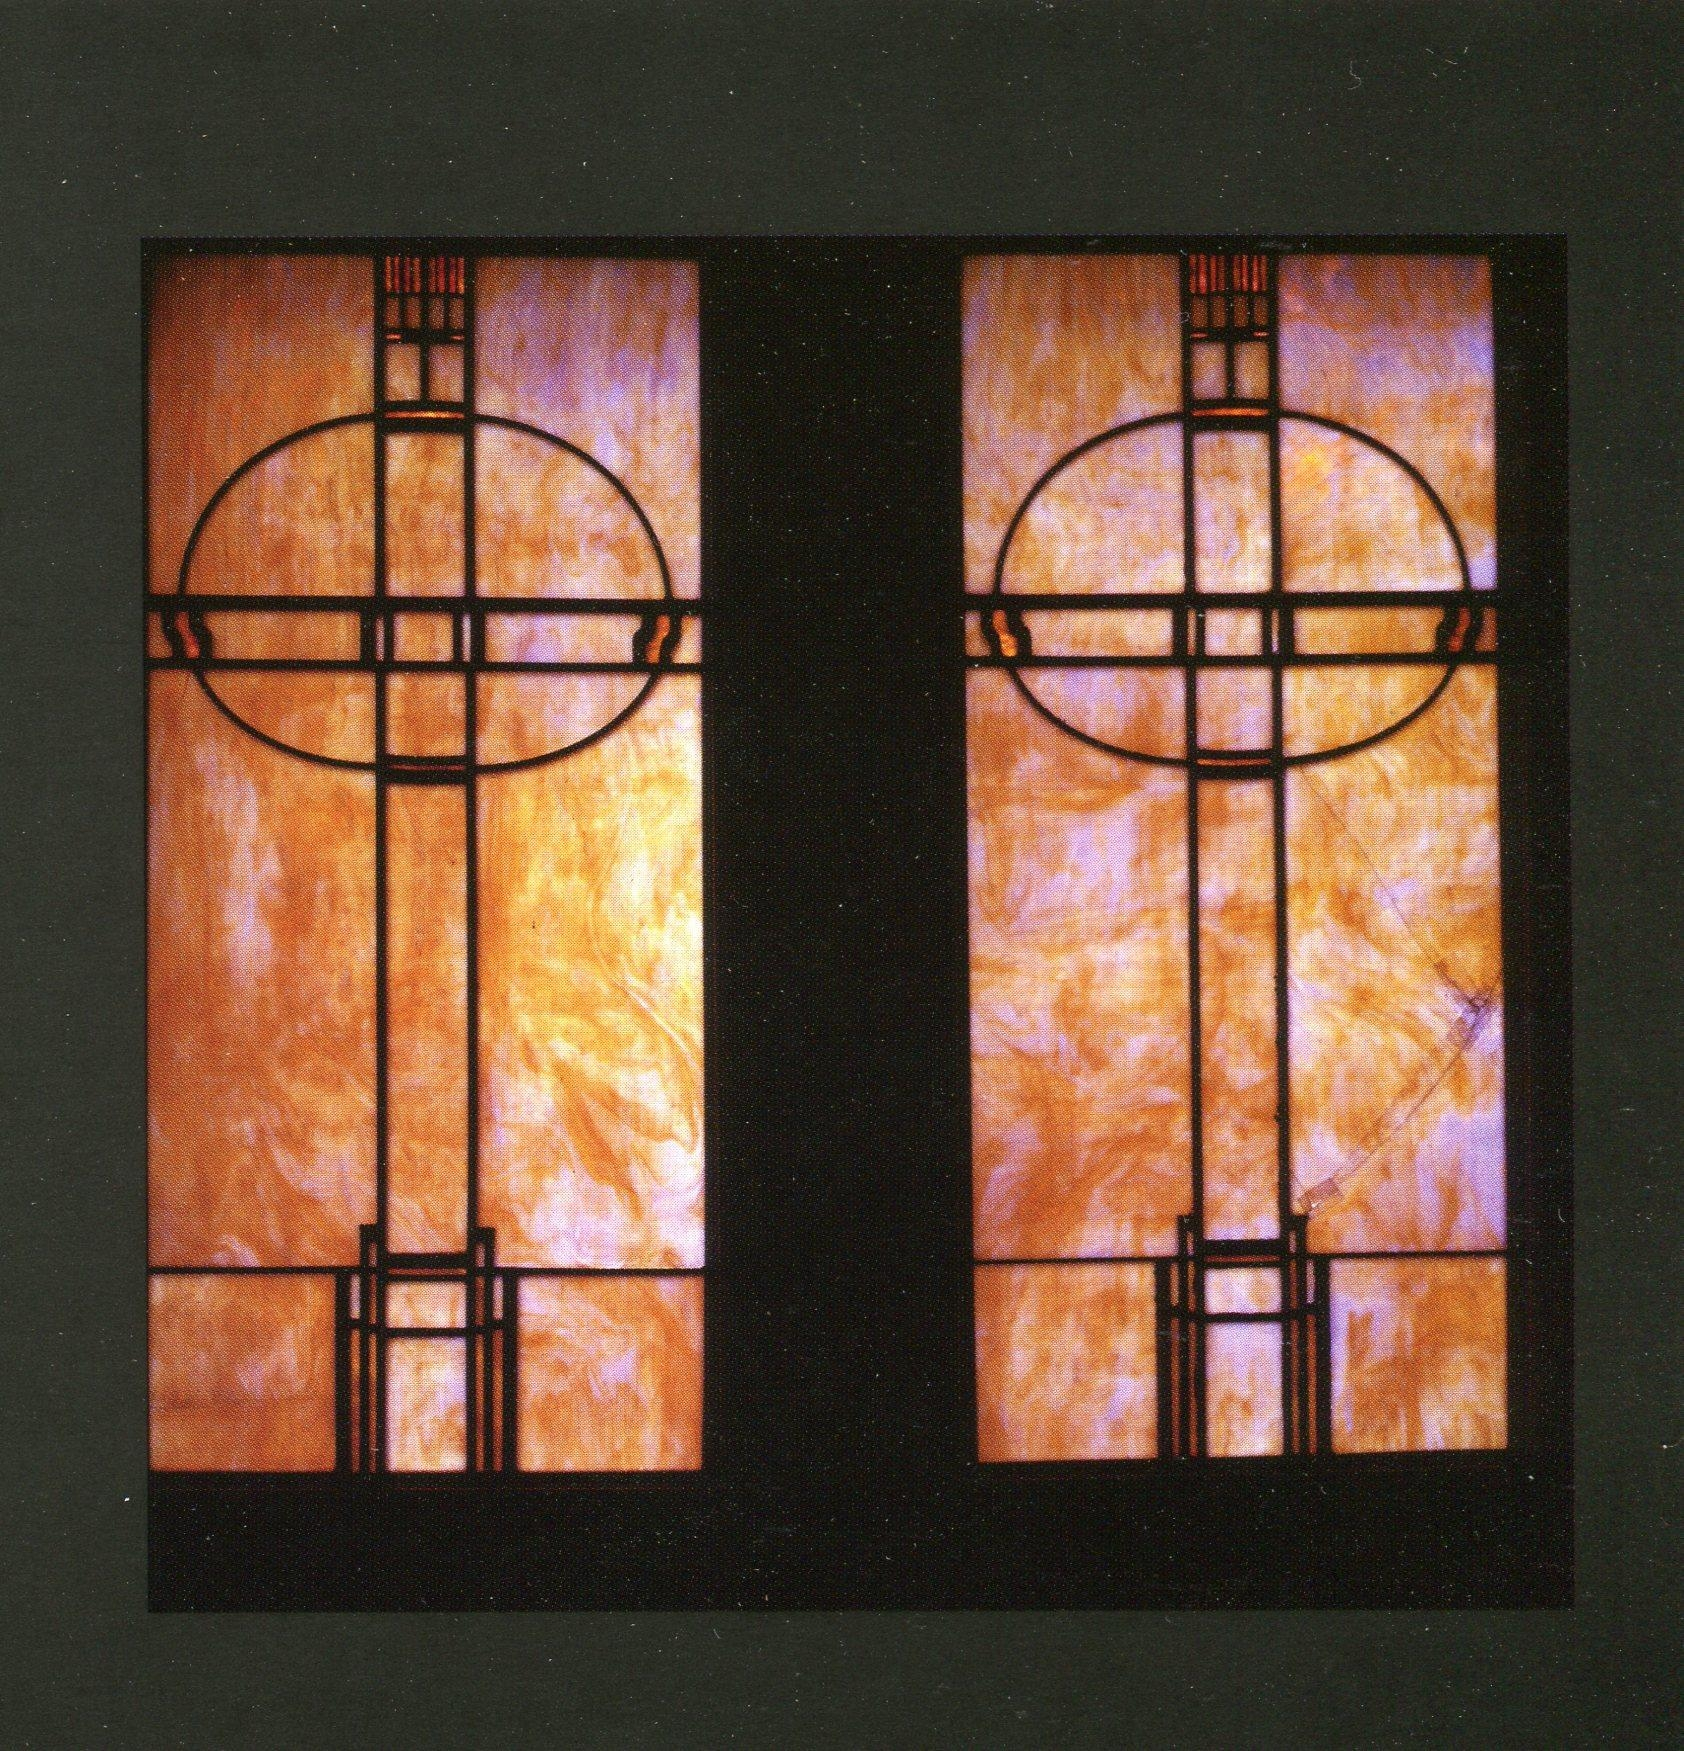 Stained Glass Designs Of Frank Lloyd Wright – Grainger Arts With Frank Lloyd Wright Wall Art (Image 18 of 20)